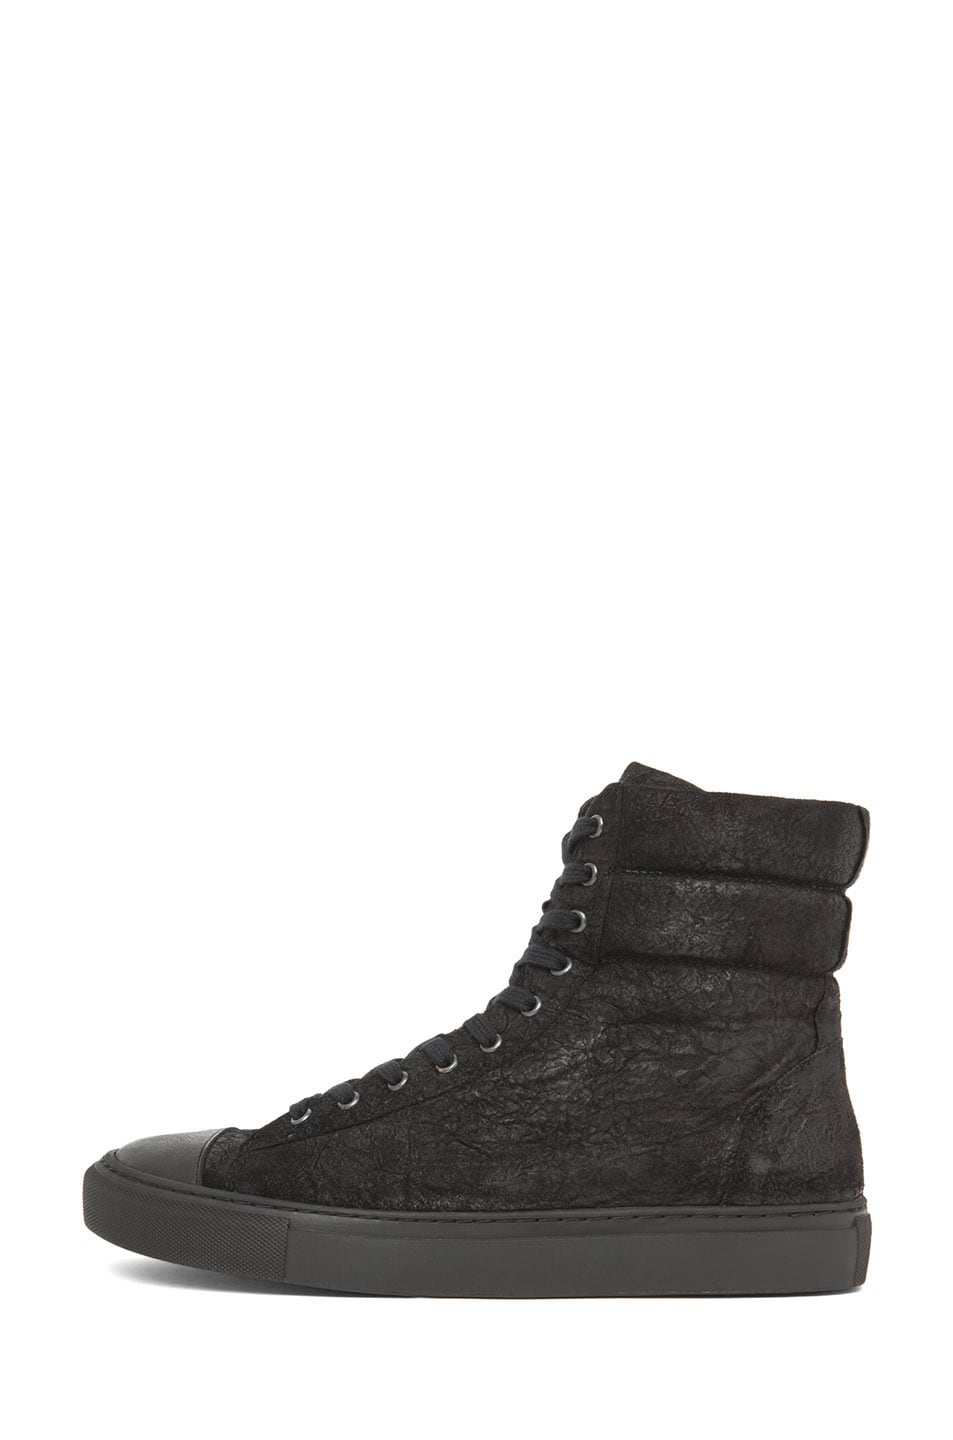 Image 1 of SILENT DAMIR DOMA Satur Leather Sneaker in Black